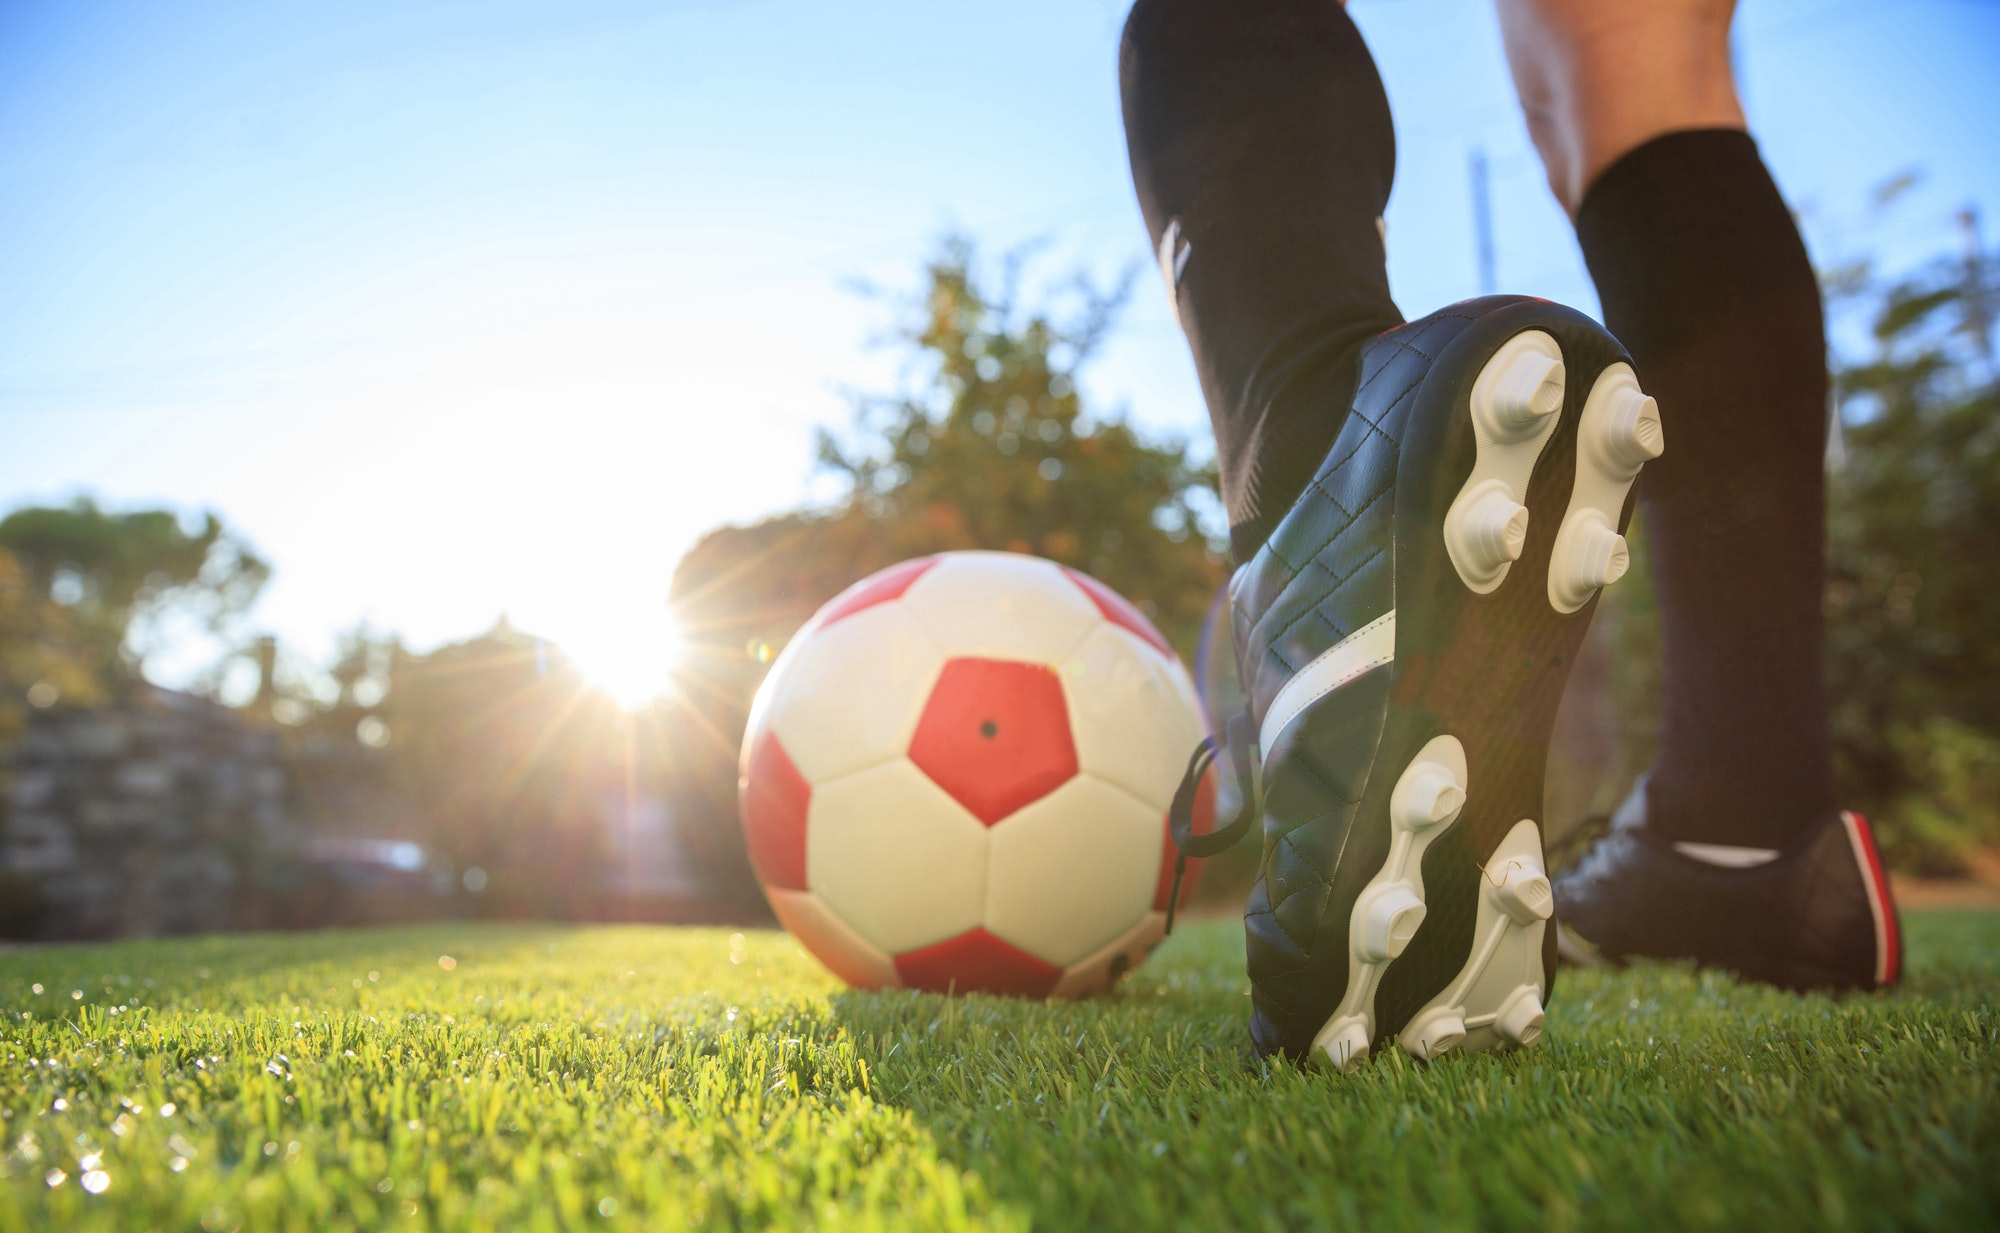 Woman and a soccer ball on the grass